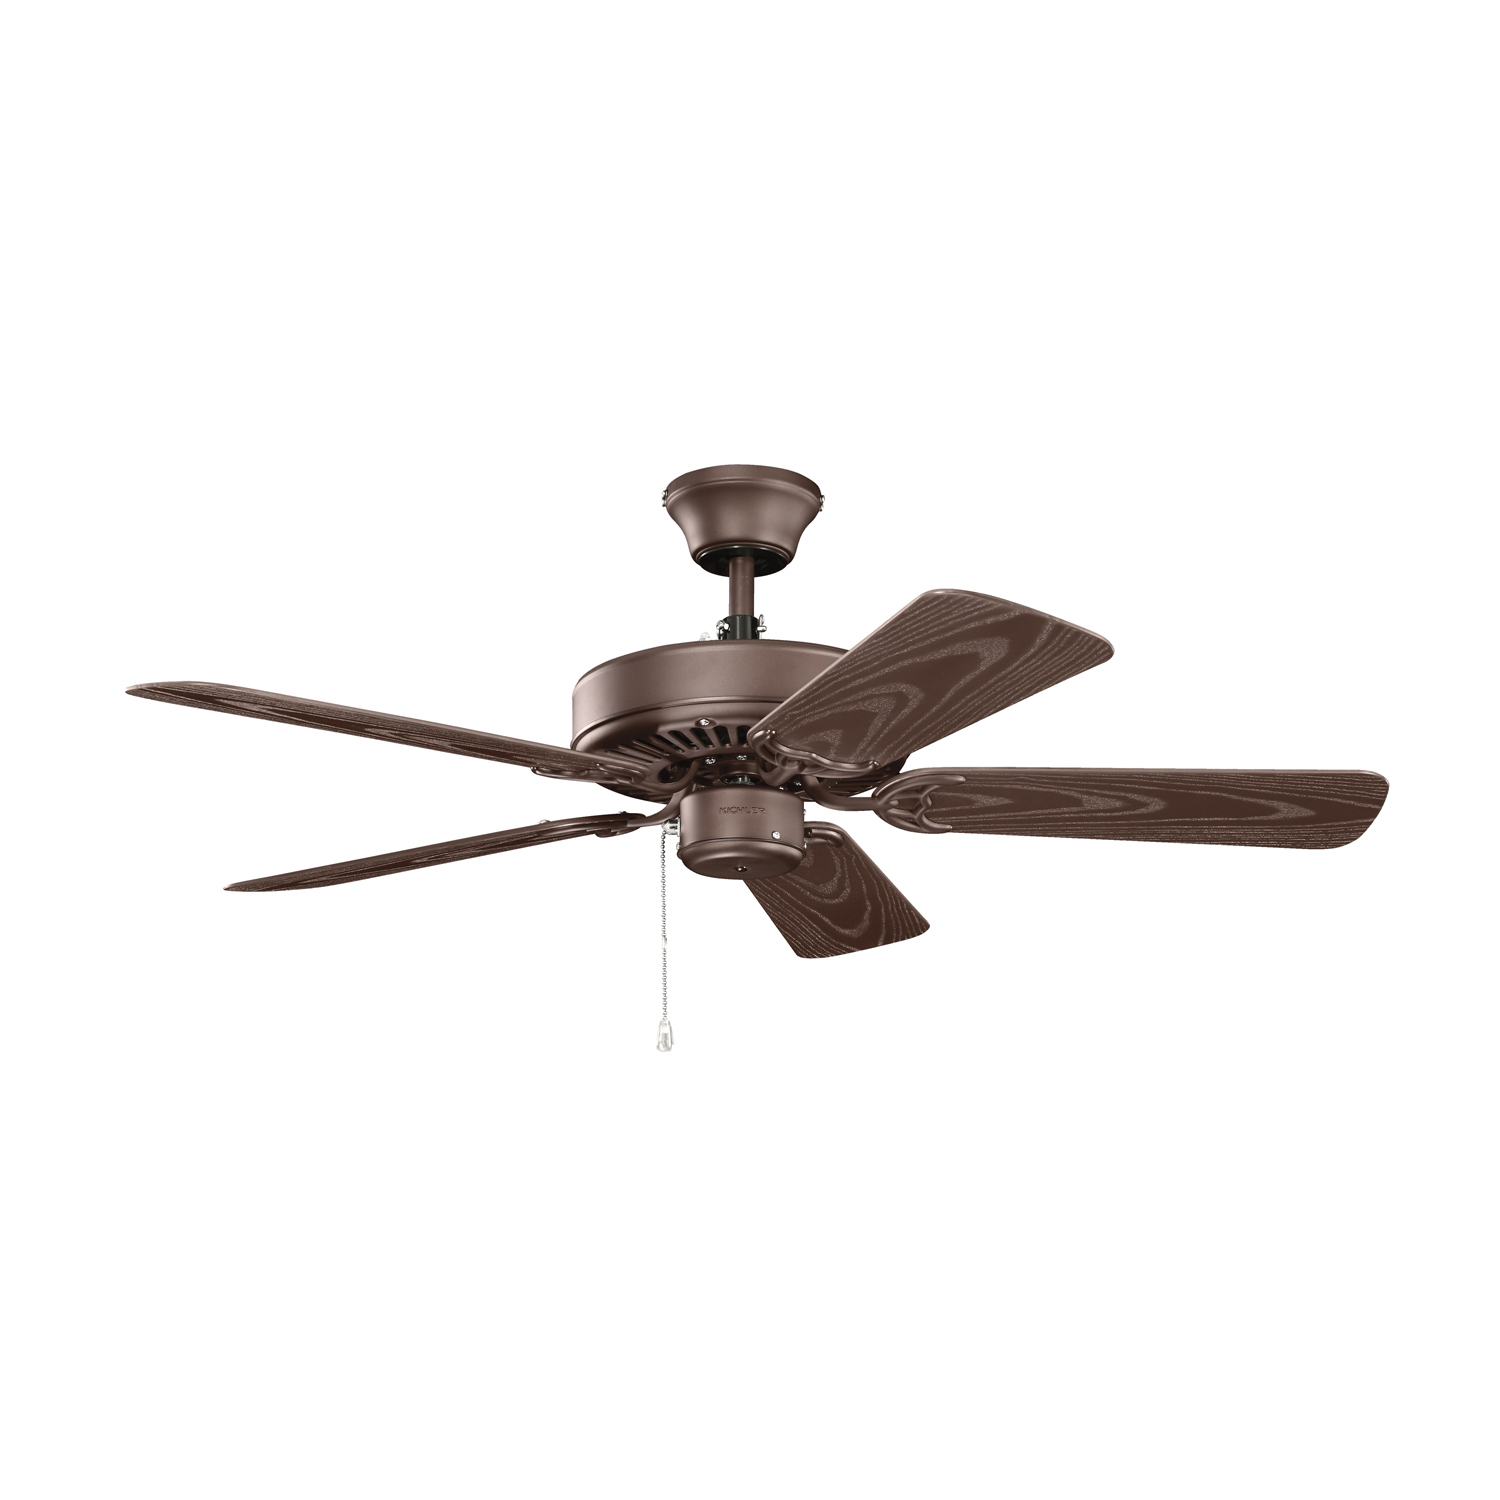 42 inchCeiling Fan from the Basics collection by Kichler 414SNB